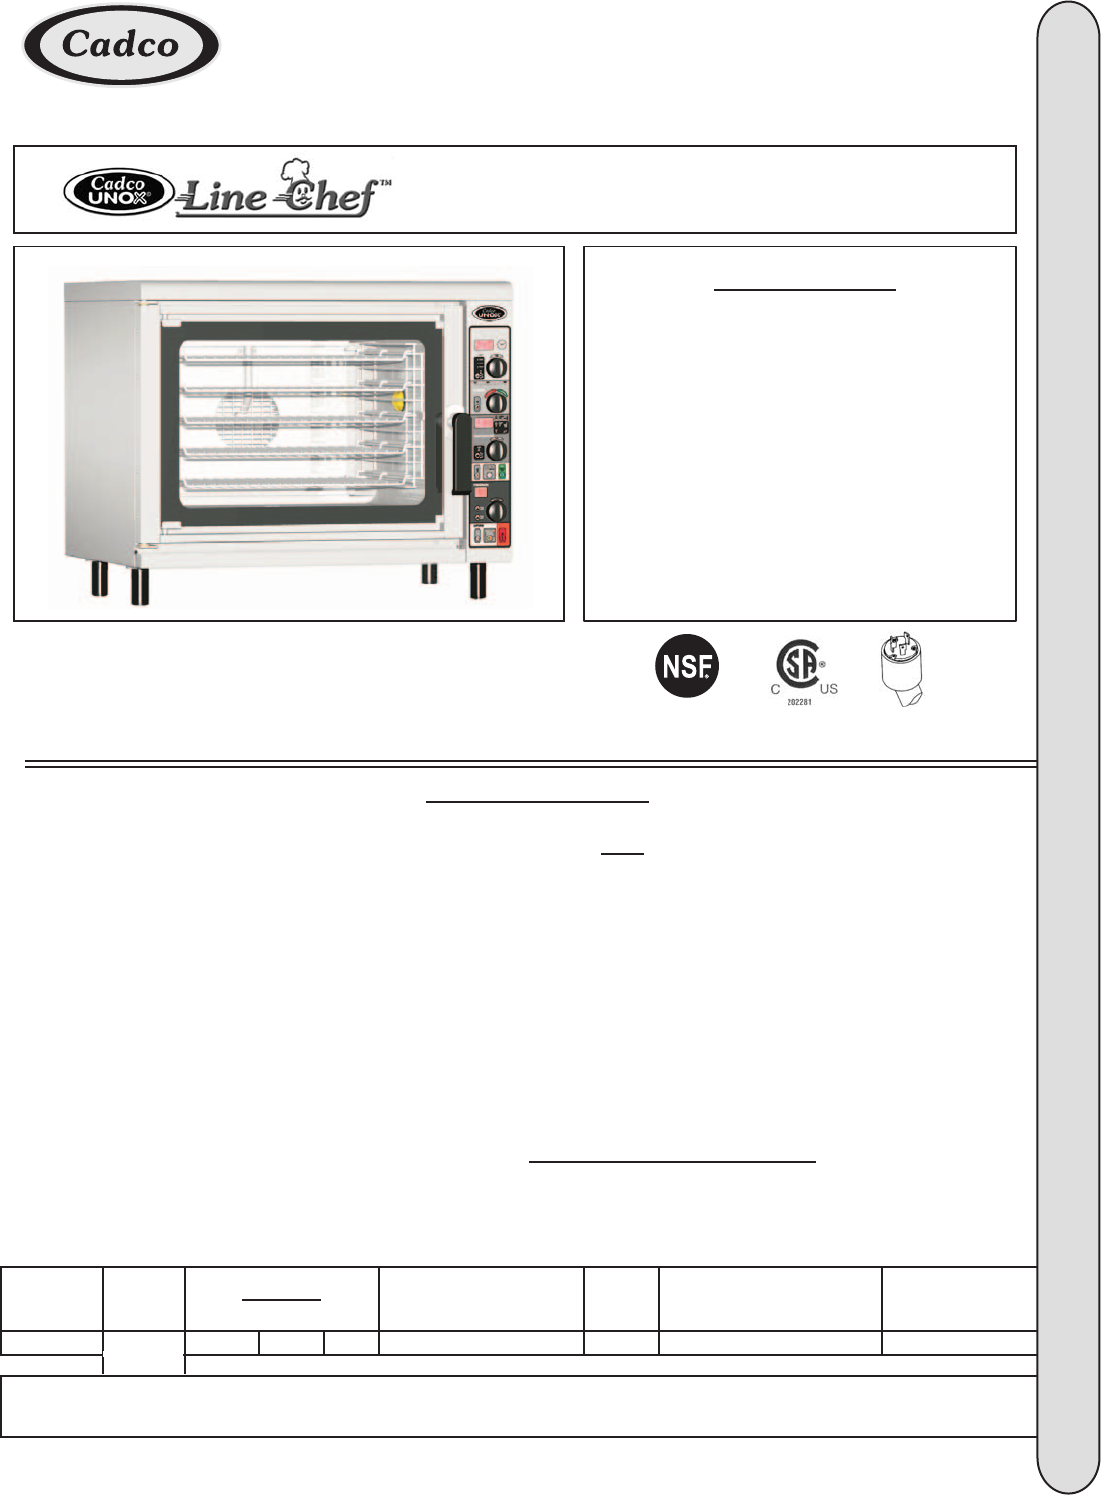 Model CAPO-303 - Countertop combination oven